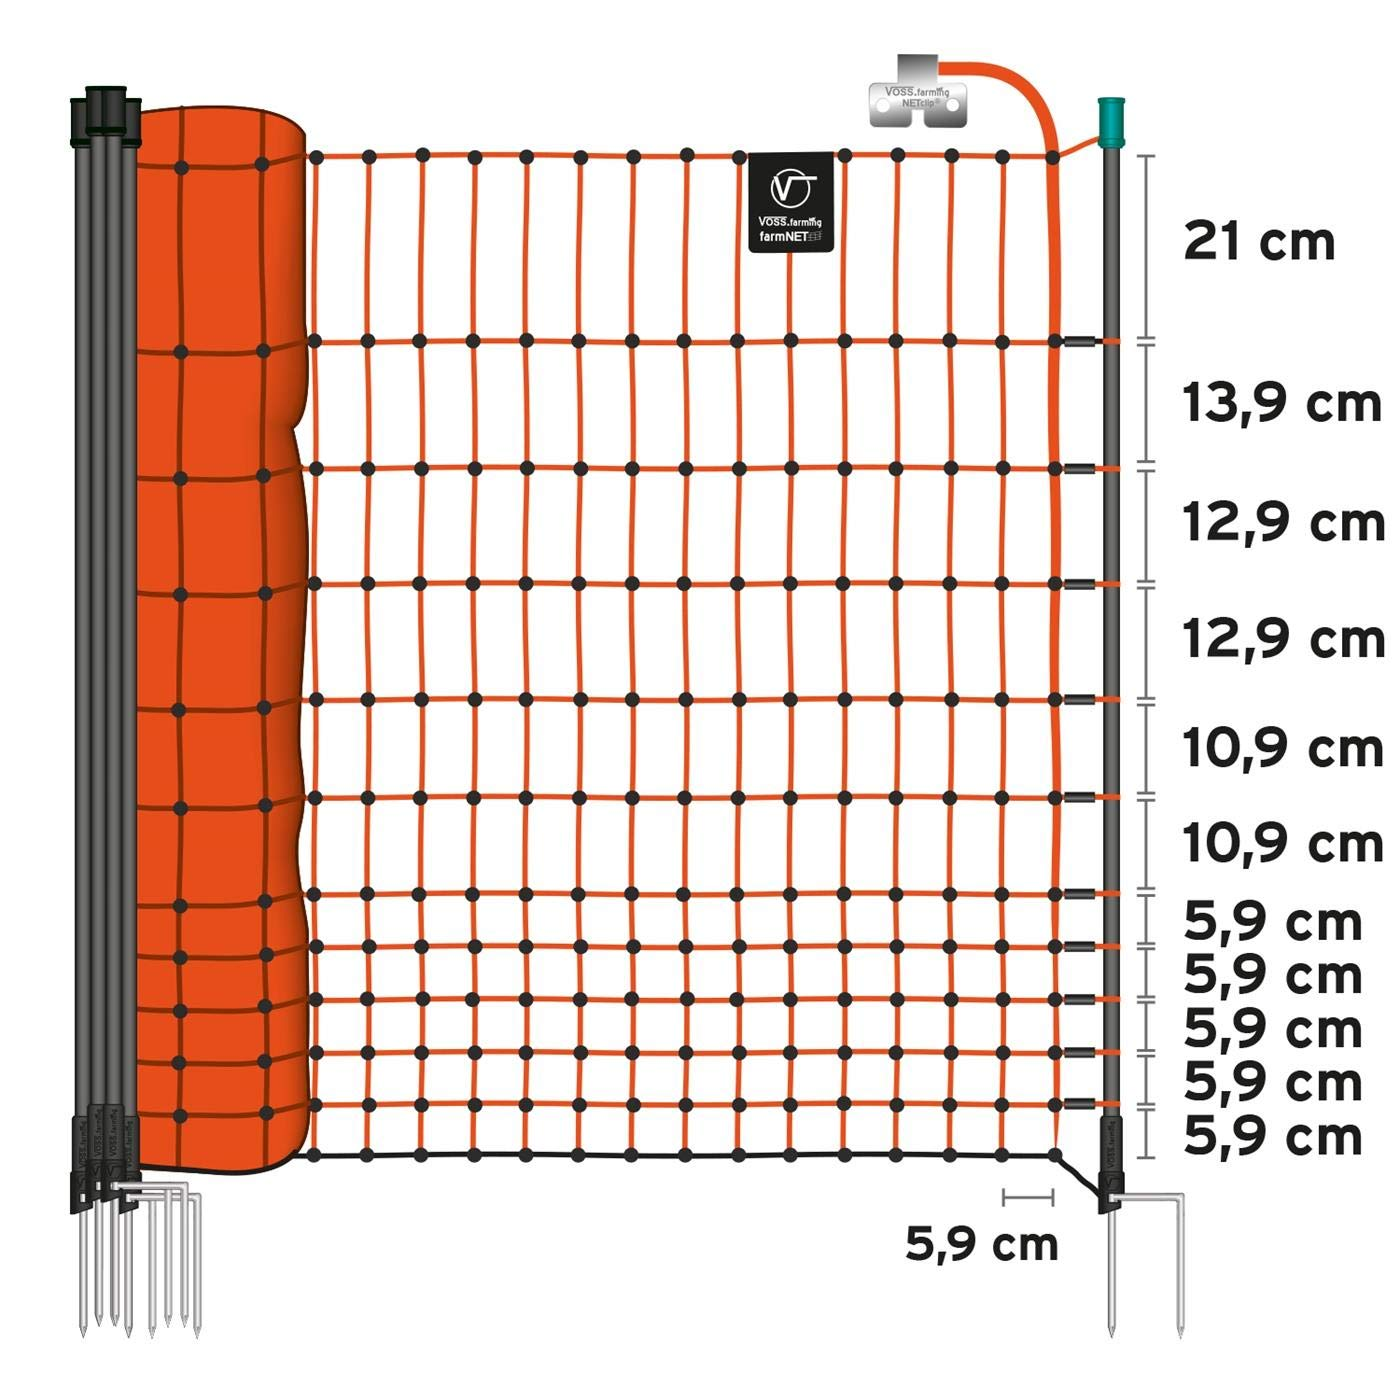 Can be Extended to 450m Gate Guy Ropes farmNET Netting 12 V//Mains Energiser Sign Anti-Fox VOSS.farming 50m Premium Poultry Electric Fence Kit incl Tester 3 J 12,000 V